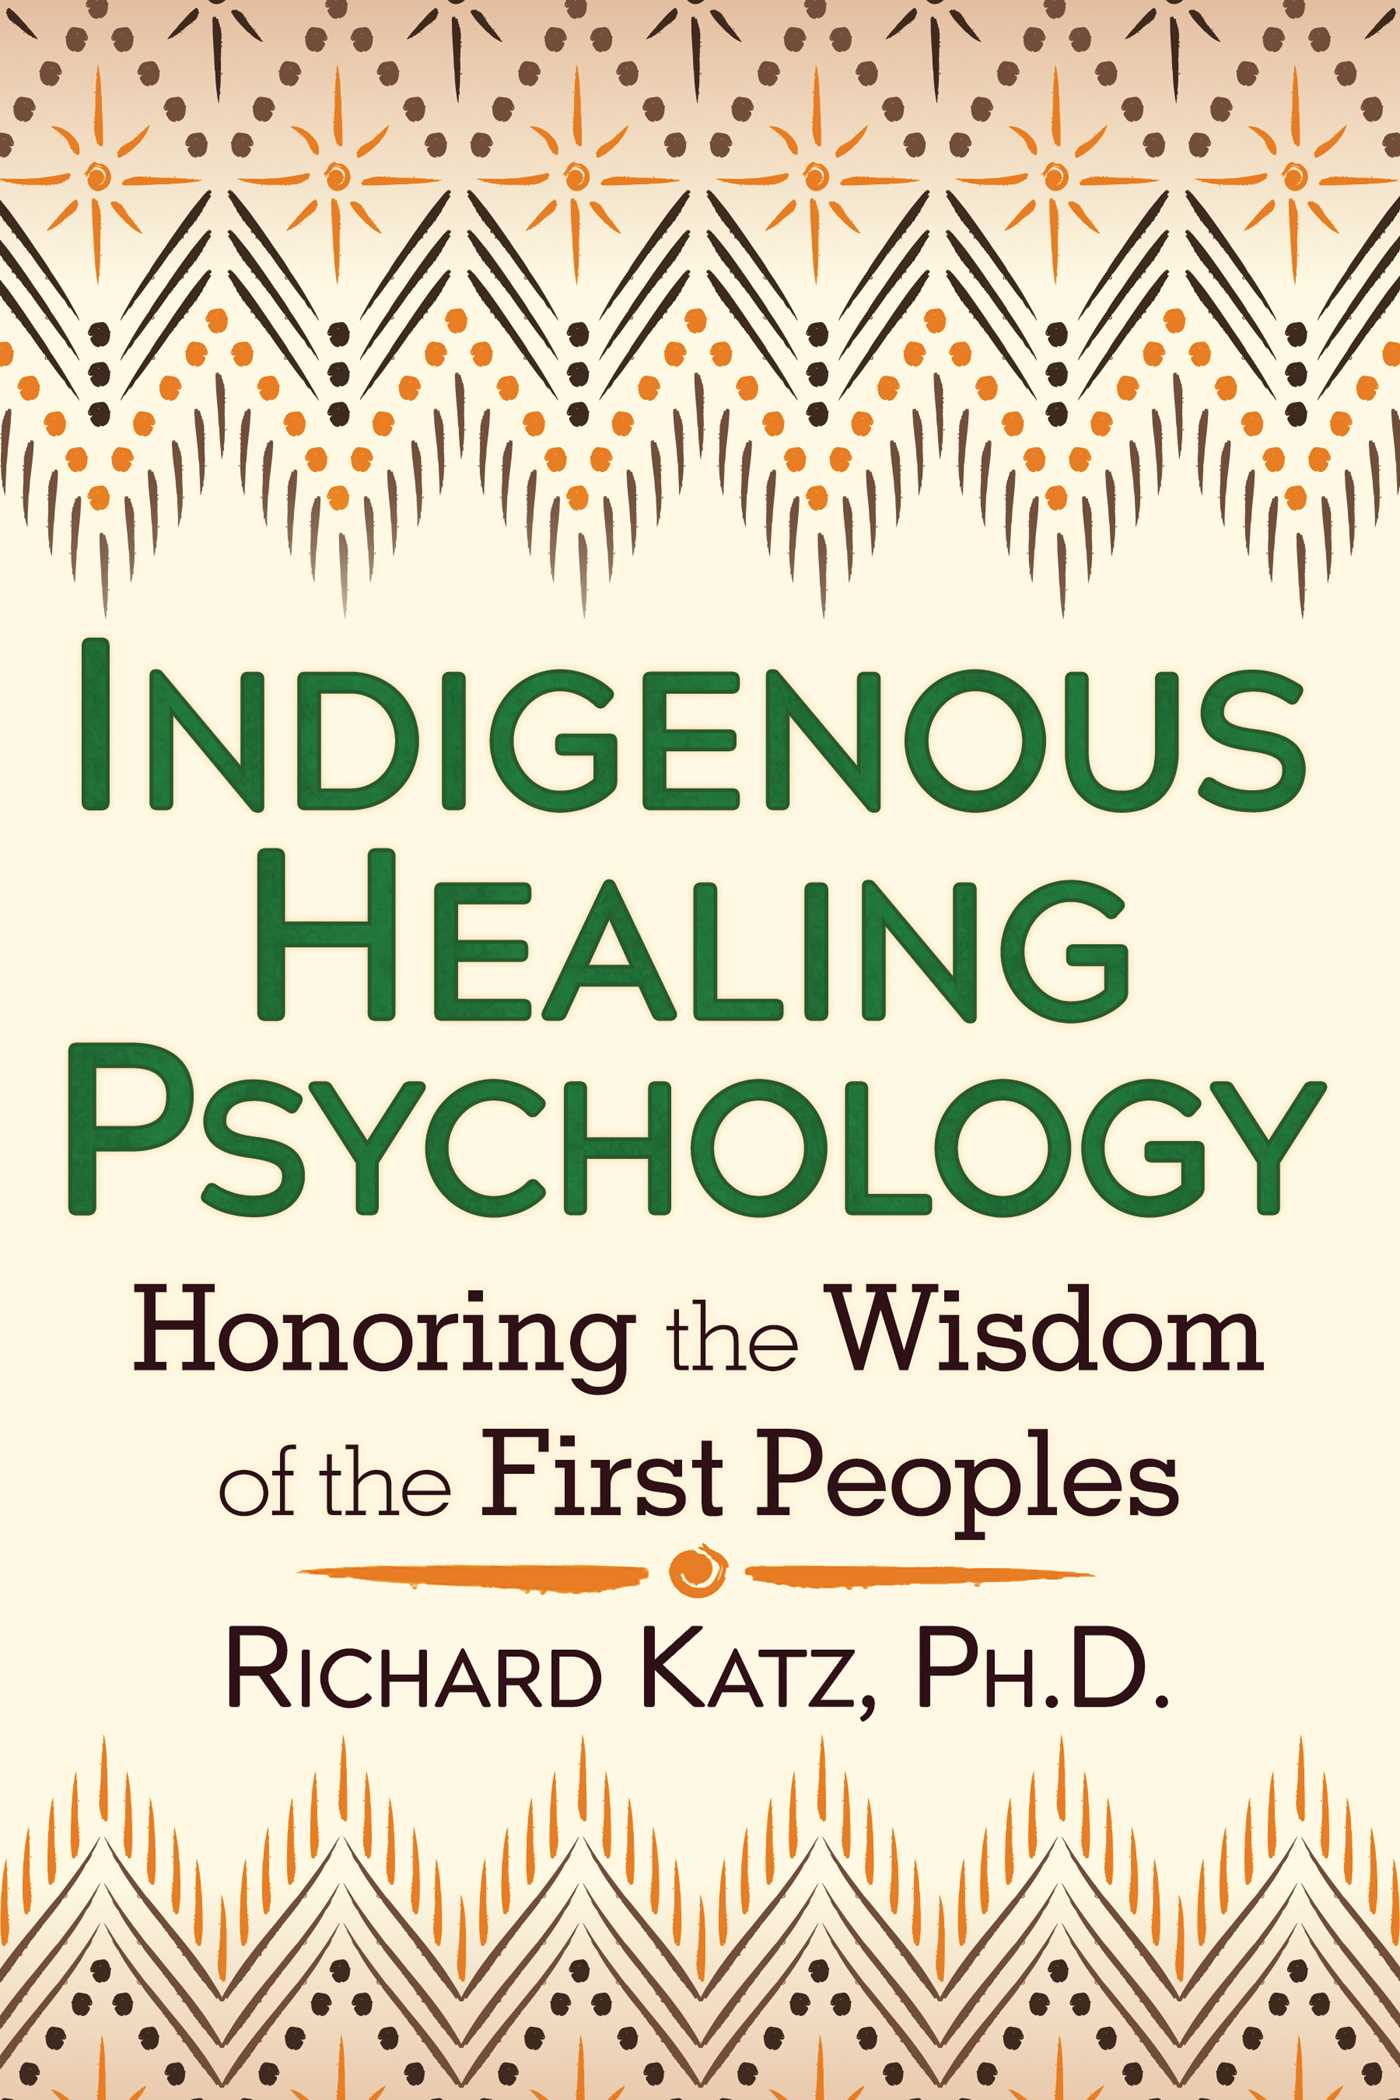 Indigenous healing psychology 9781620552674 hr